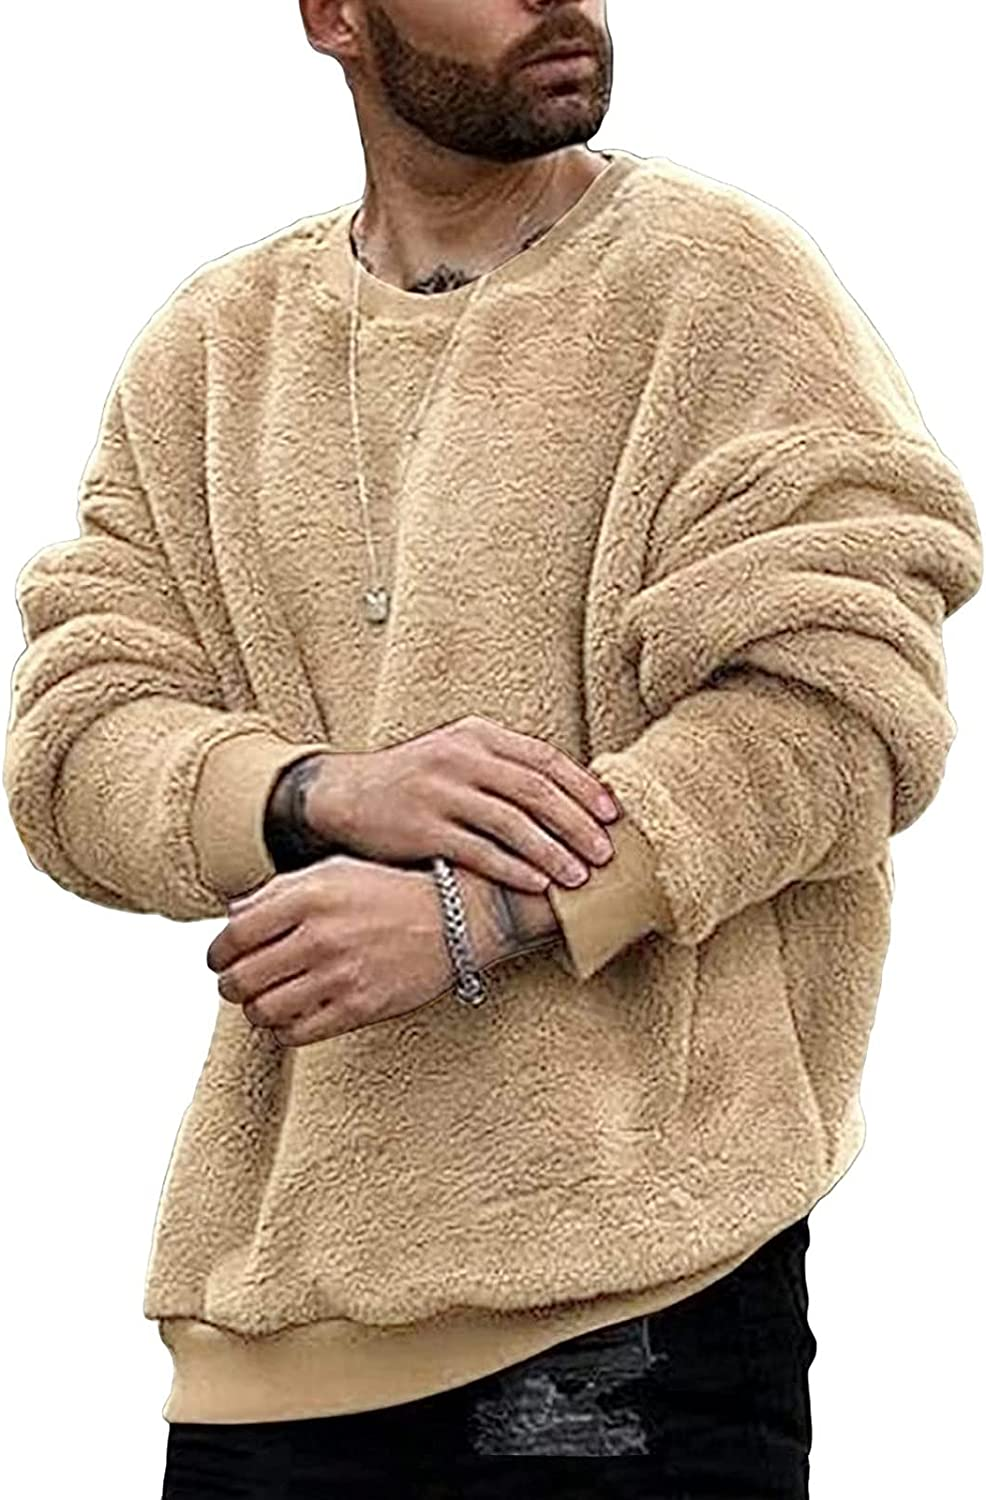 XXBR Fuzzy Pullover for Mens, 2021 Fashion Fluffy Crewneck Cozy Sweatshirts Casual Sweaters Fall Winter Warm Jumper Tops